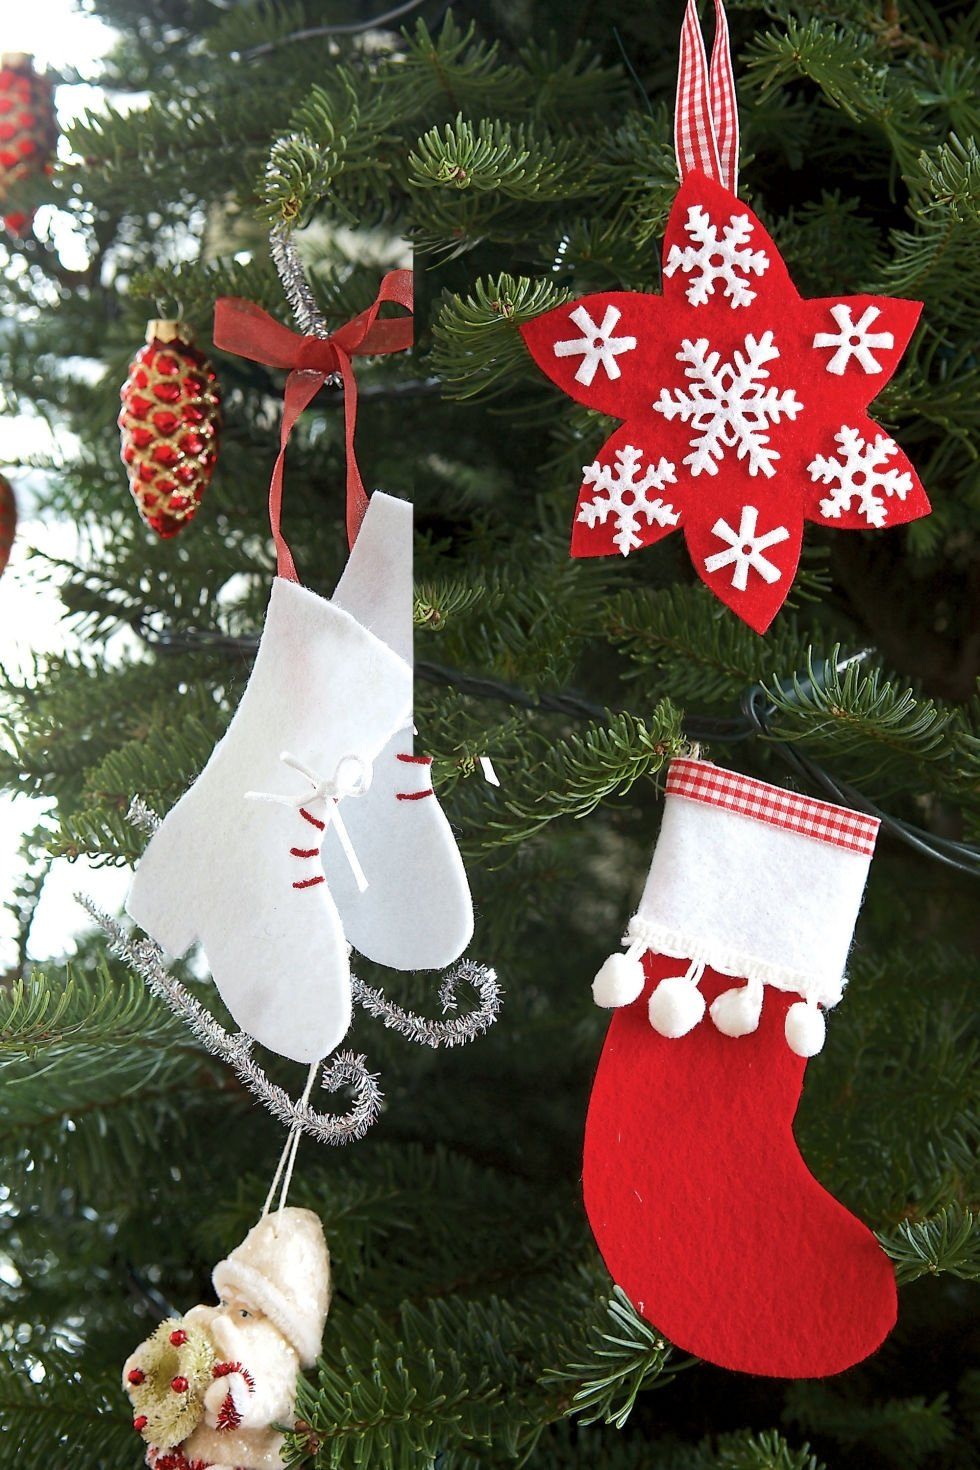 10 Cute Christmas Decorations Ideas To Make easy diy christmas decorations littlebubble 2021